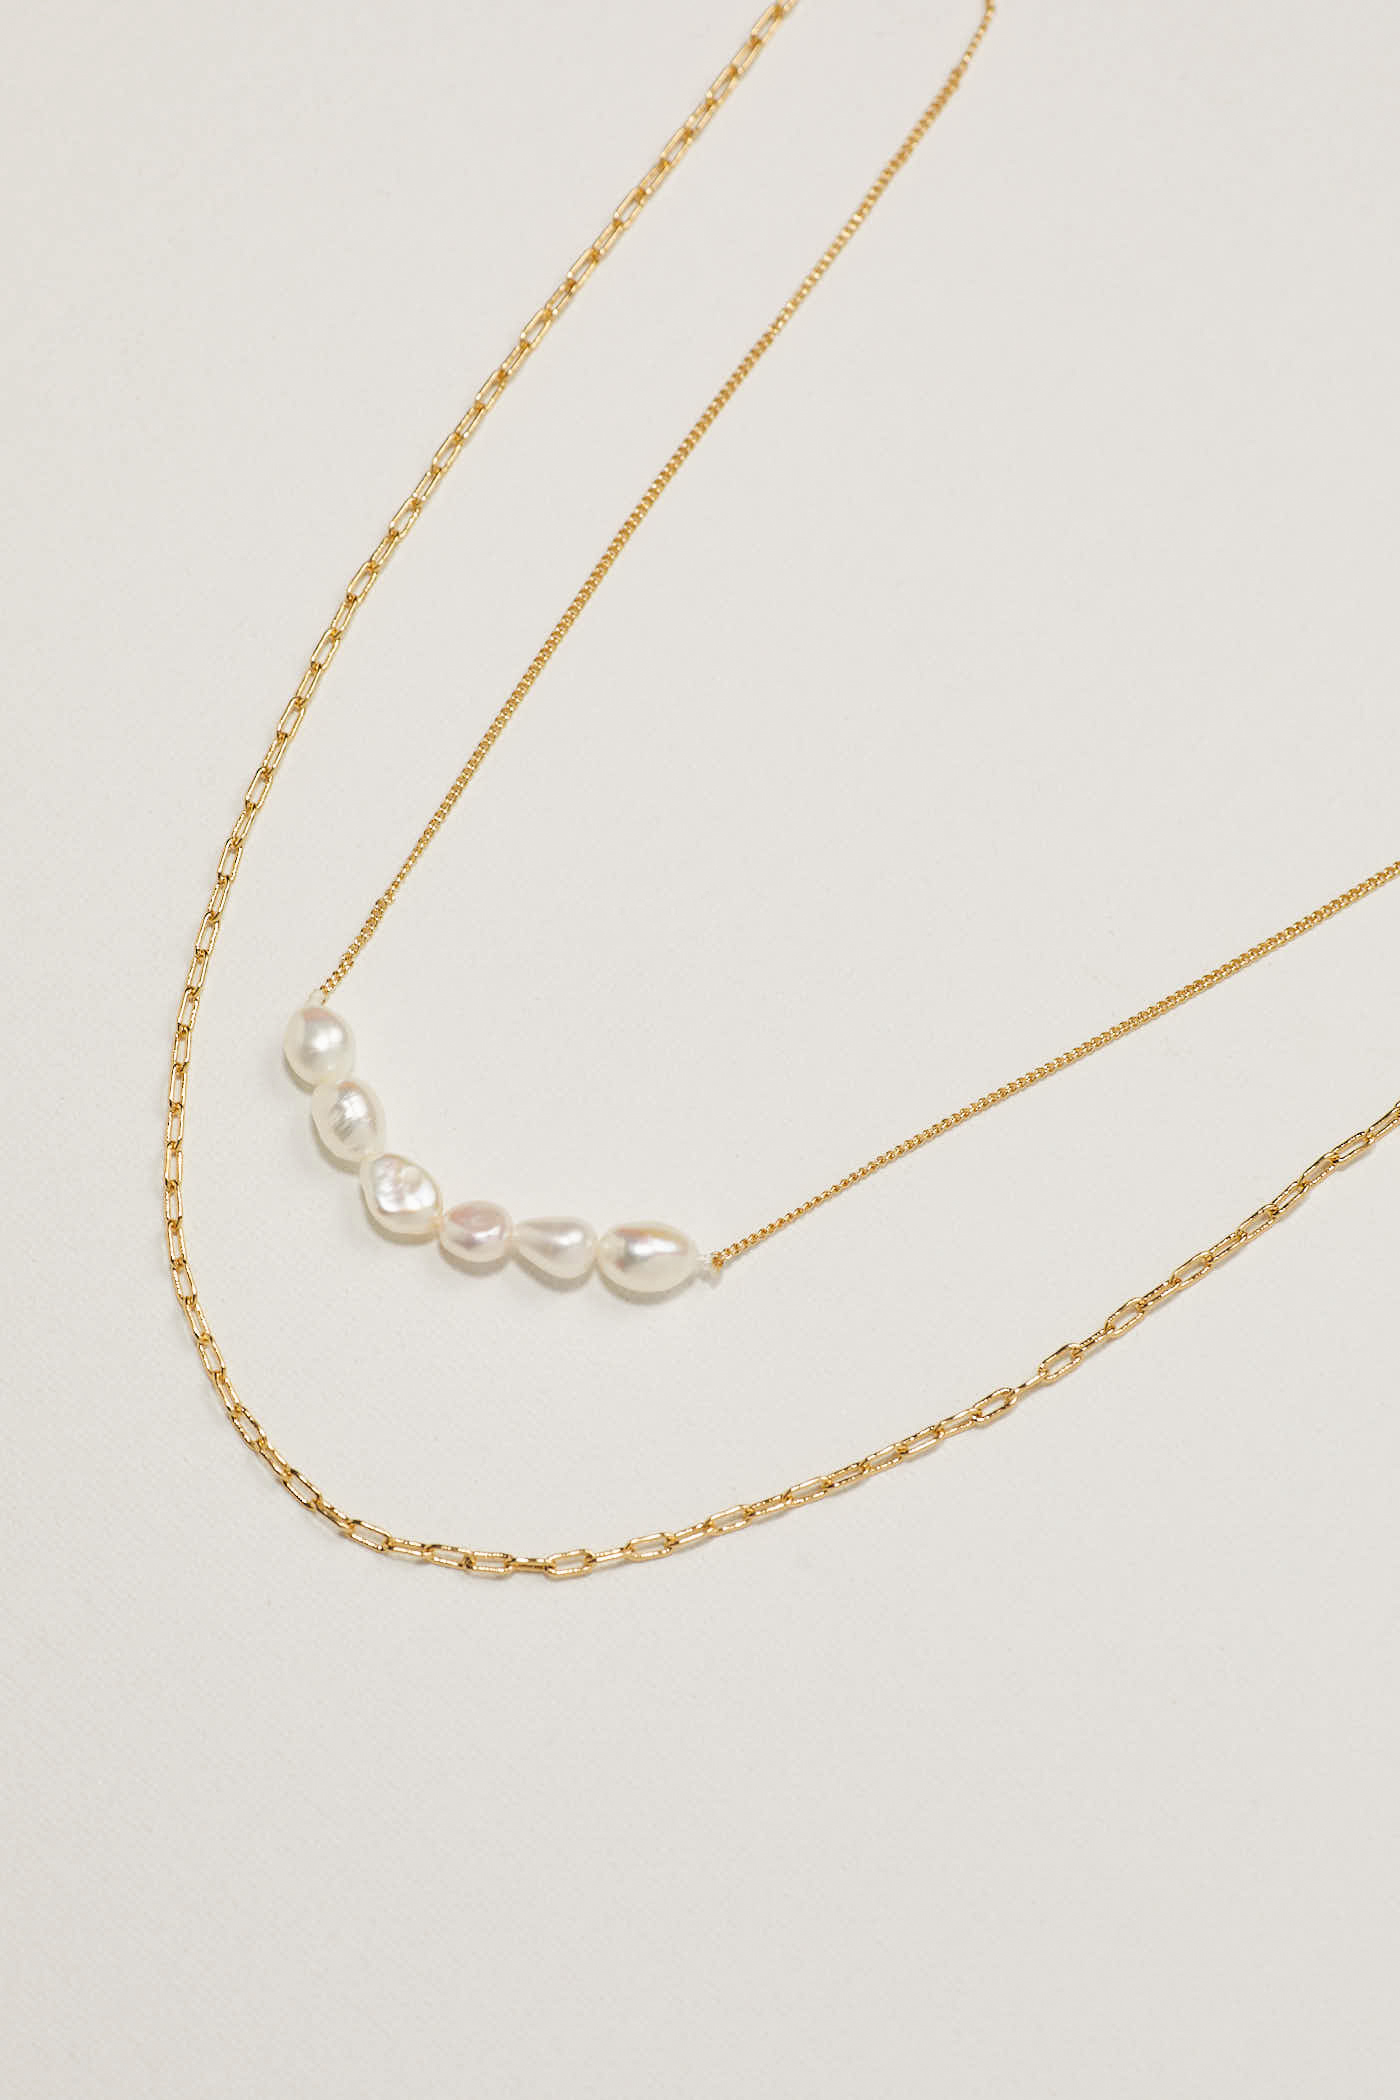 Mirabelle Necklace